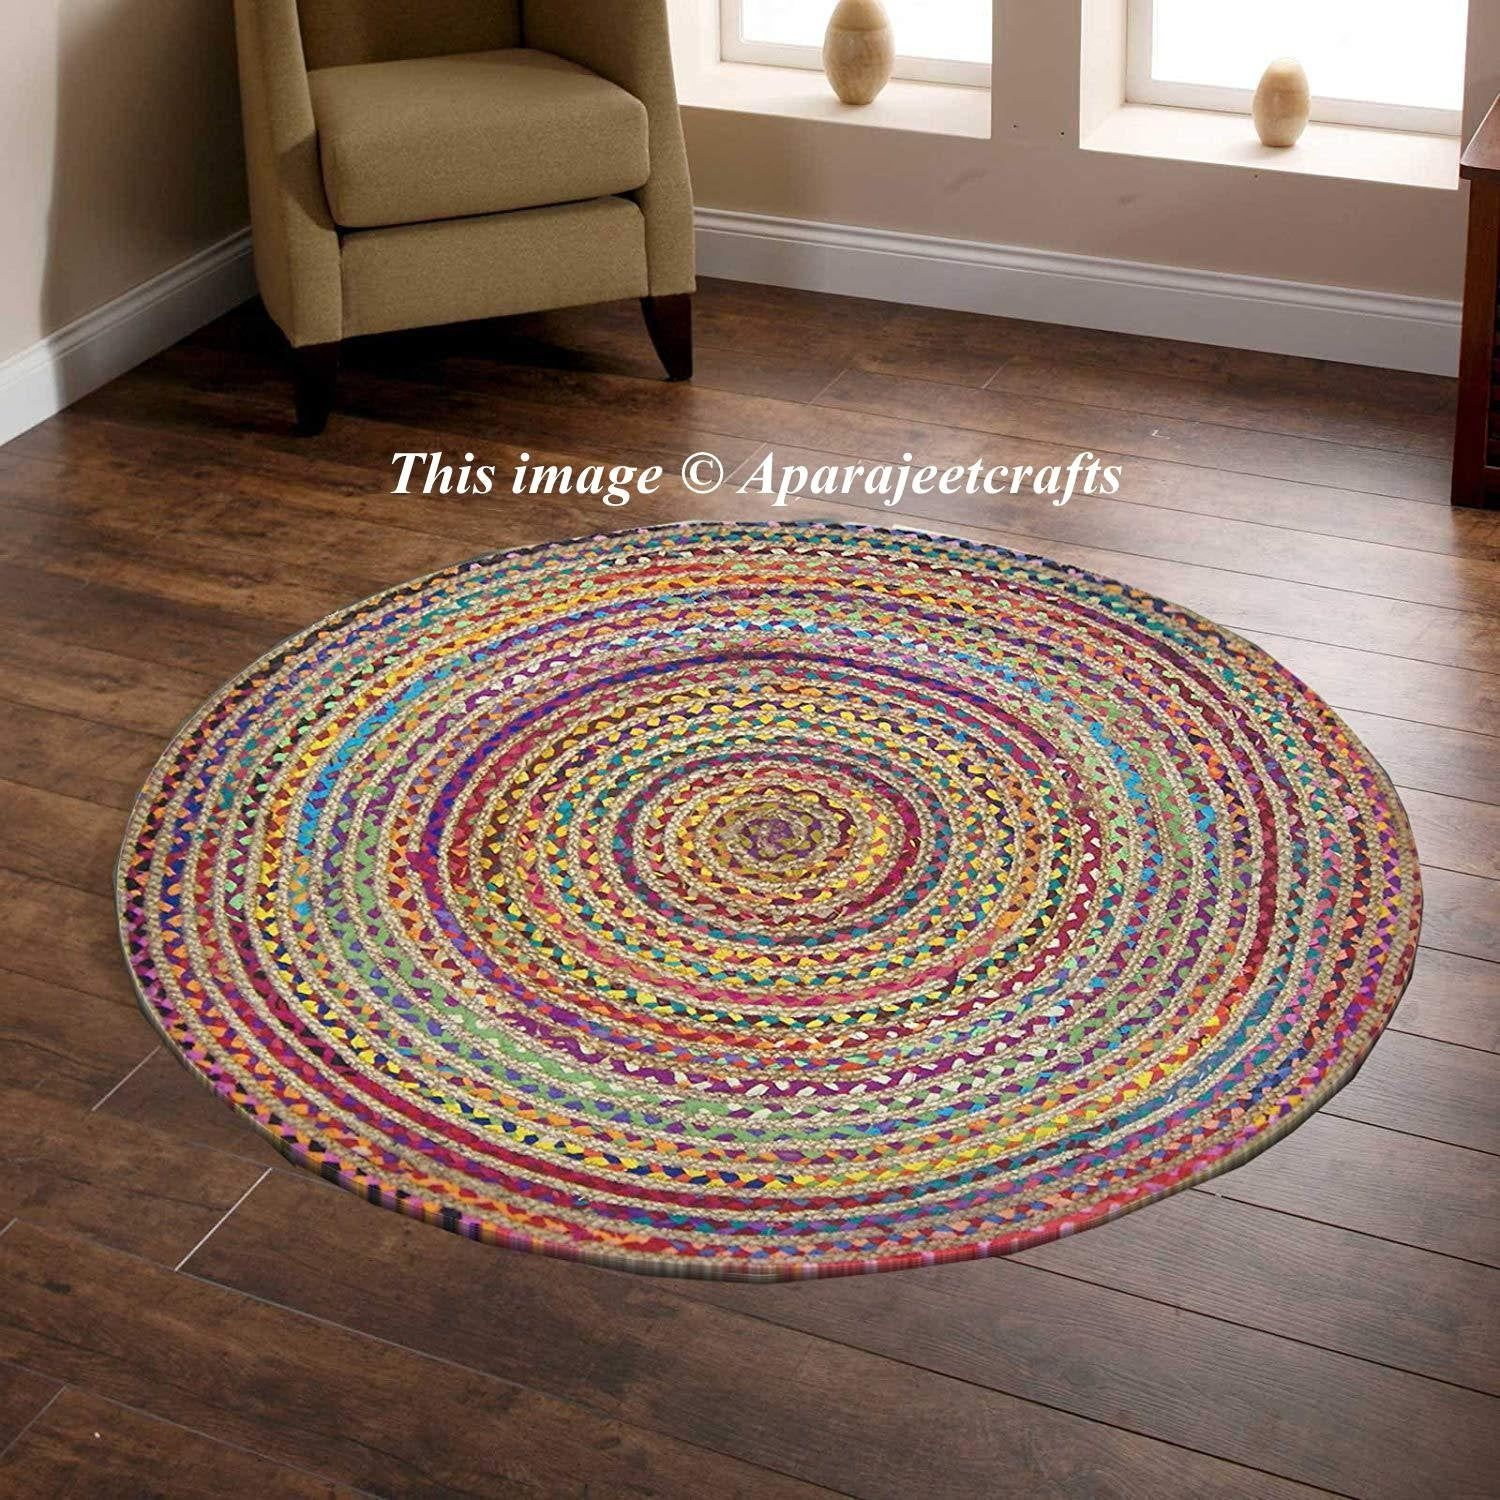 Indian Handmade Hand Braided Bohemian Cotton And Jute Area Rug Round Rug Multi Colors Home Decor Round Rugs S Braided Jute Rug Colorful Area Rug Rugs On Carpet